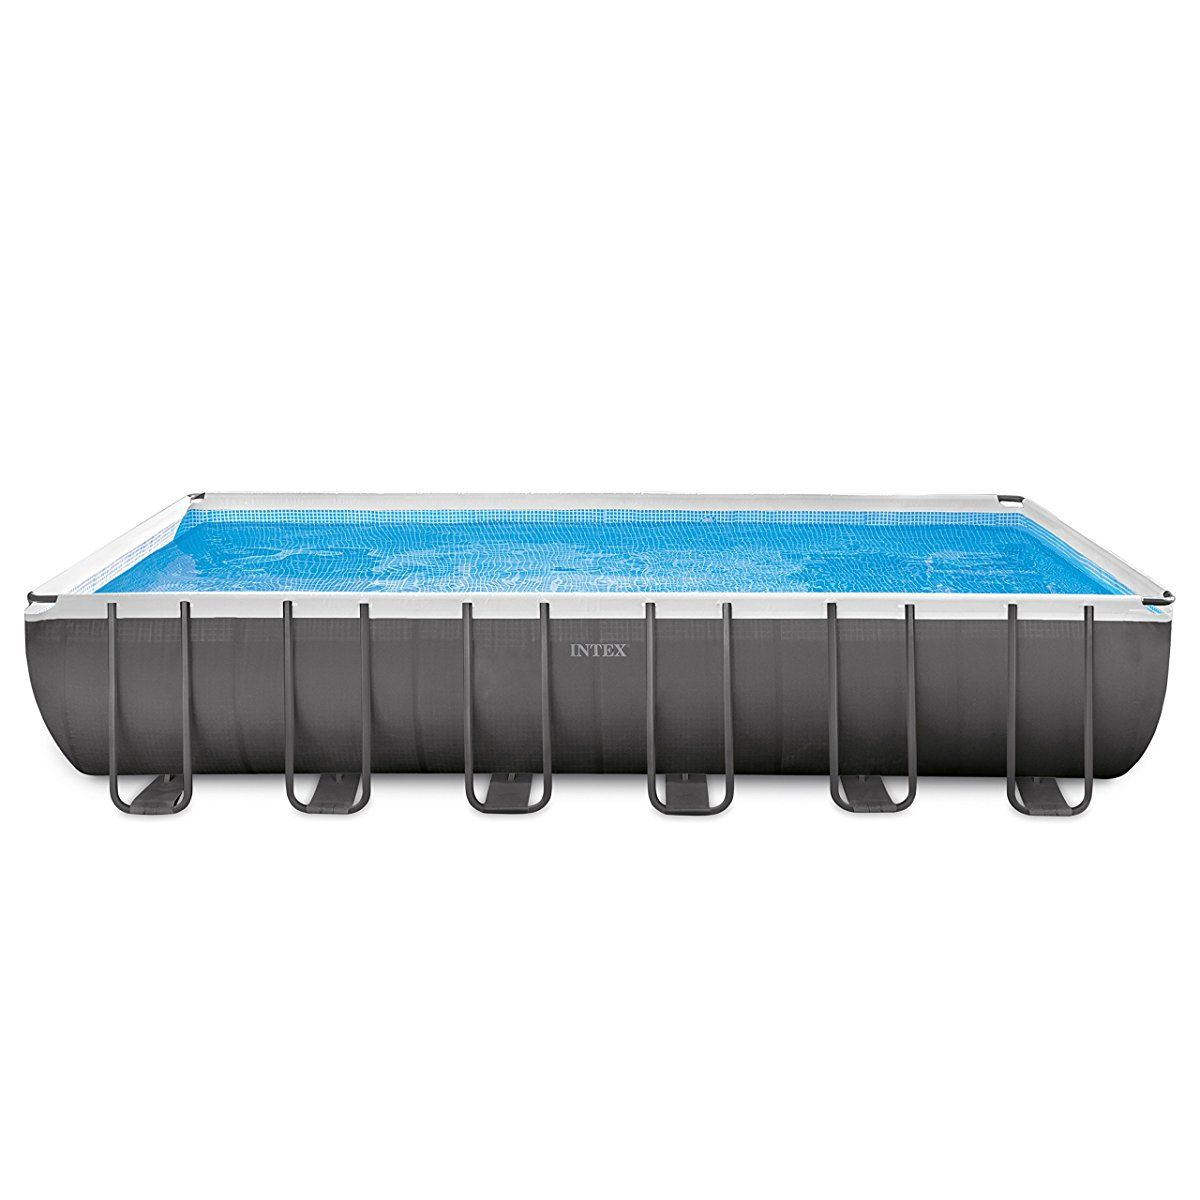 Intex 24ft X 12ft X 52in Ultra Frame Rectangular Pool Set with Sand ...